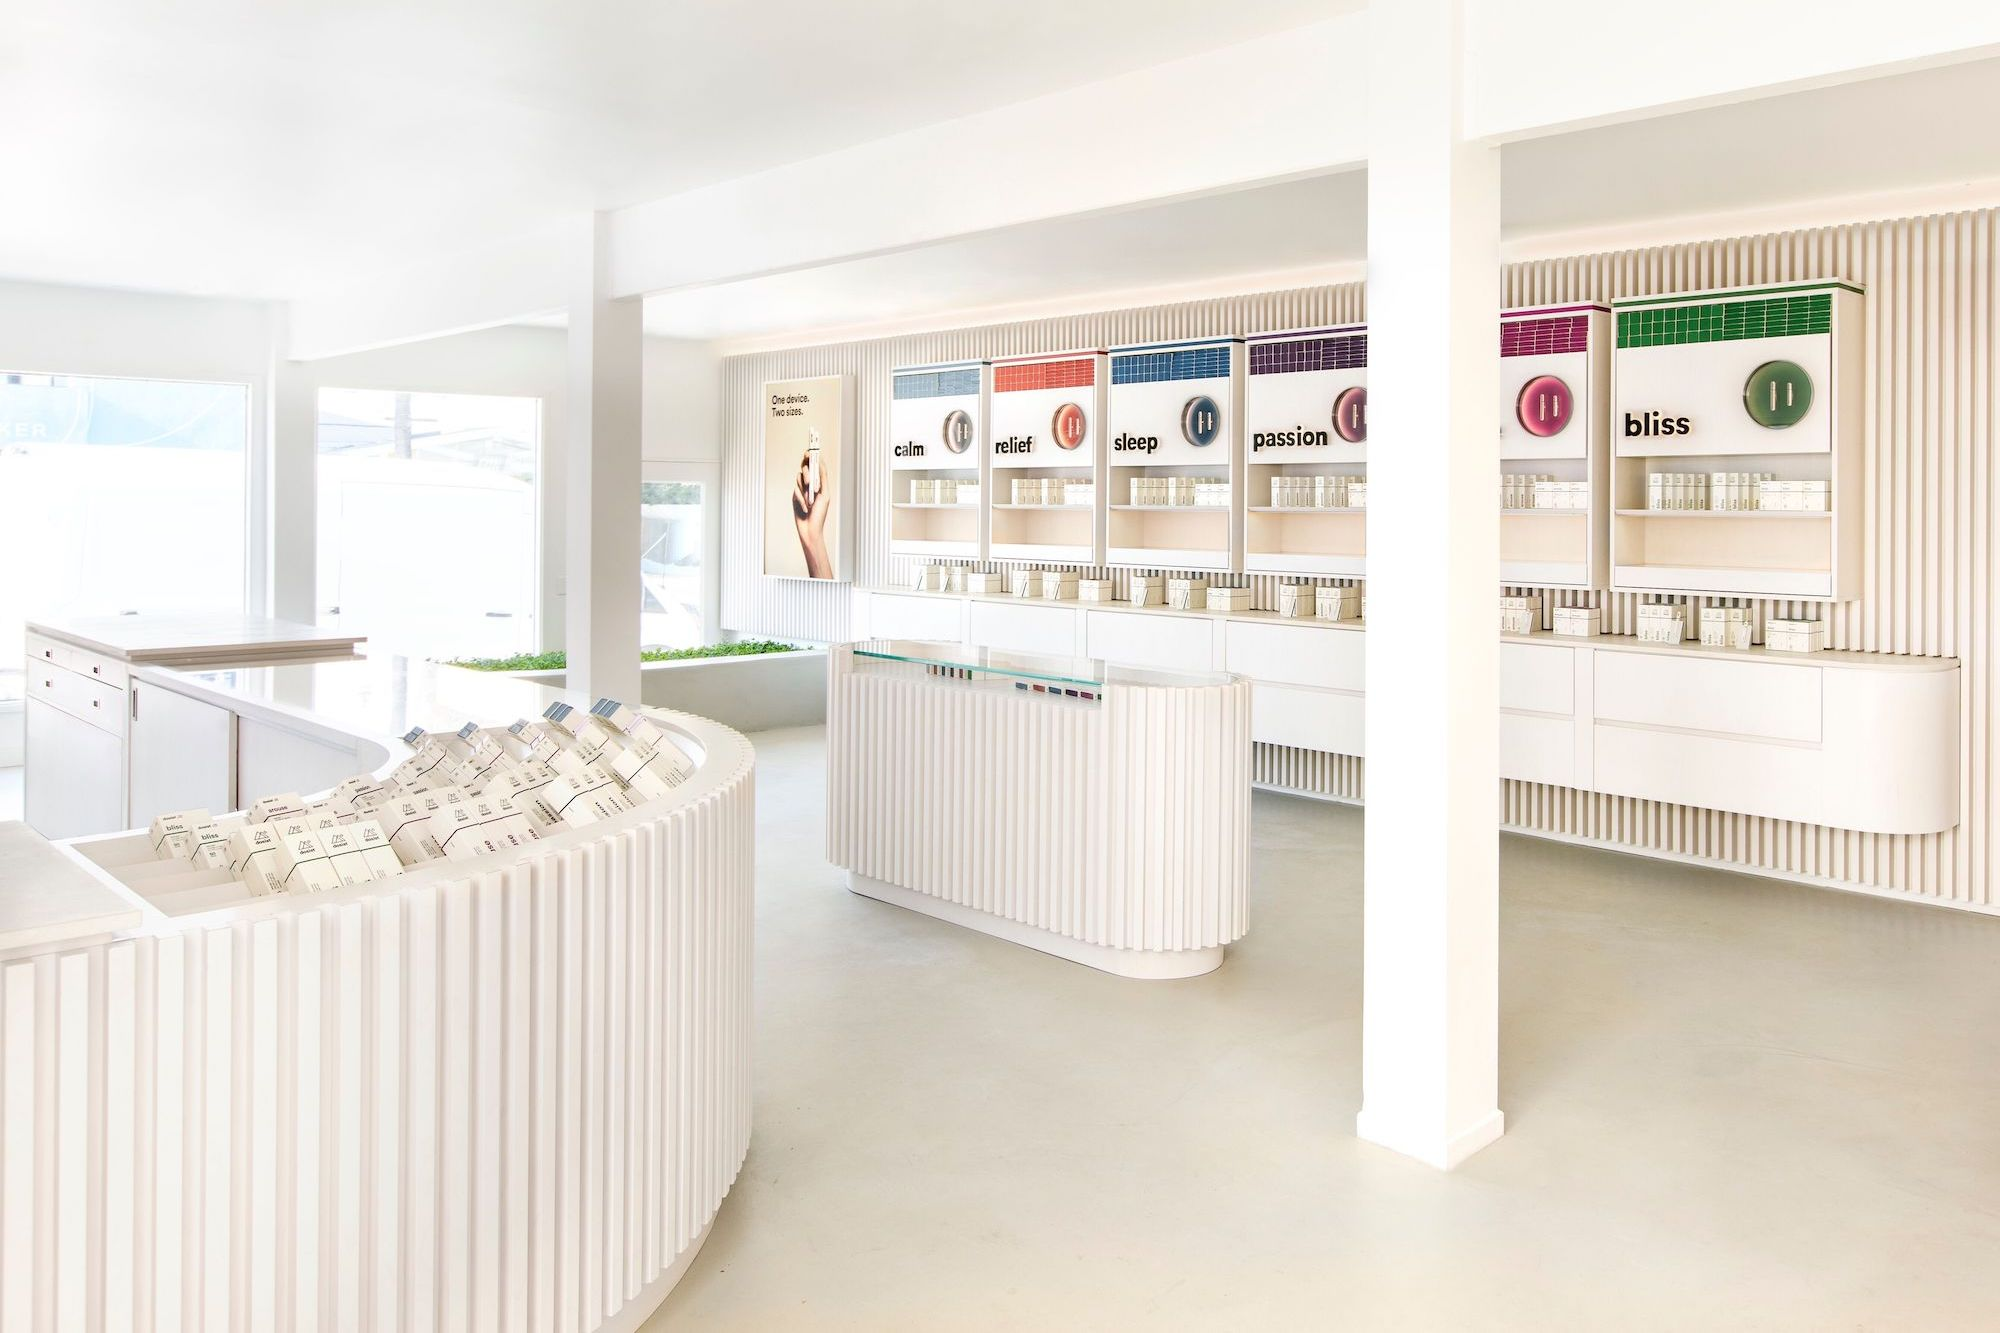 The New Dosist Store Is As Calming As Its Pens